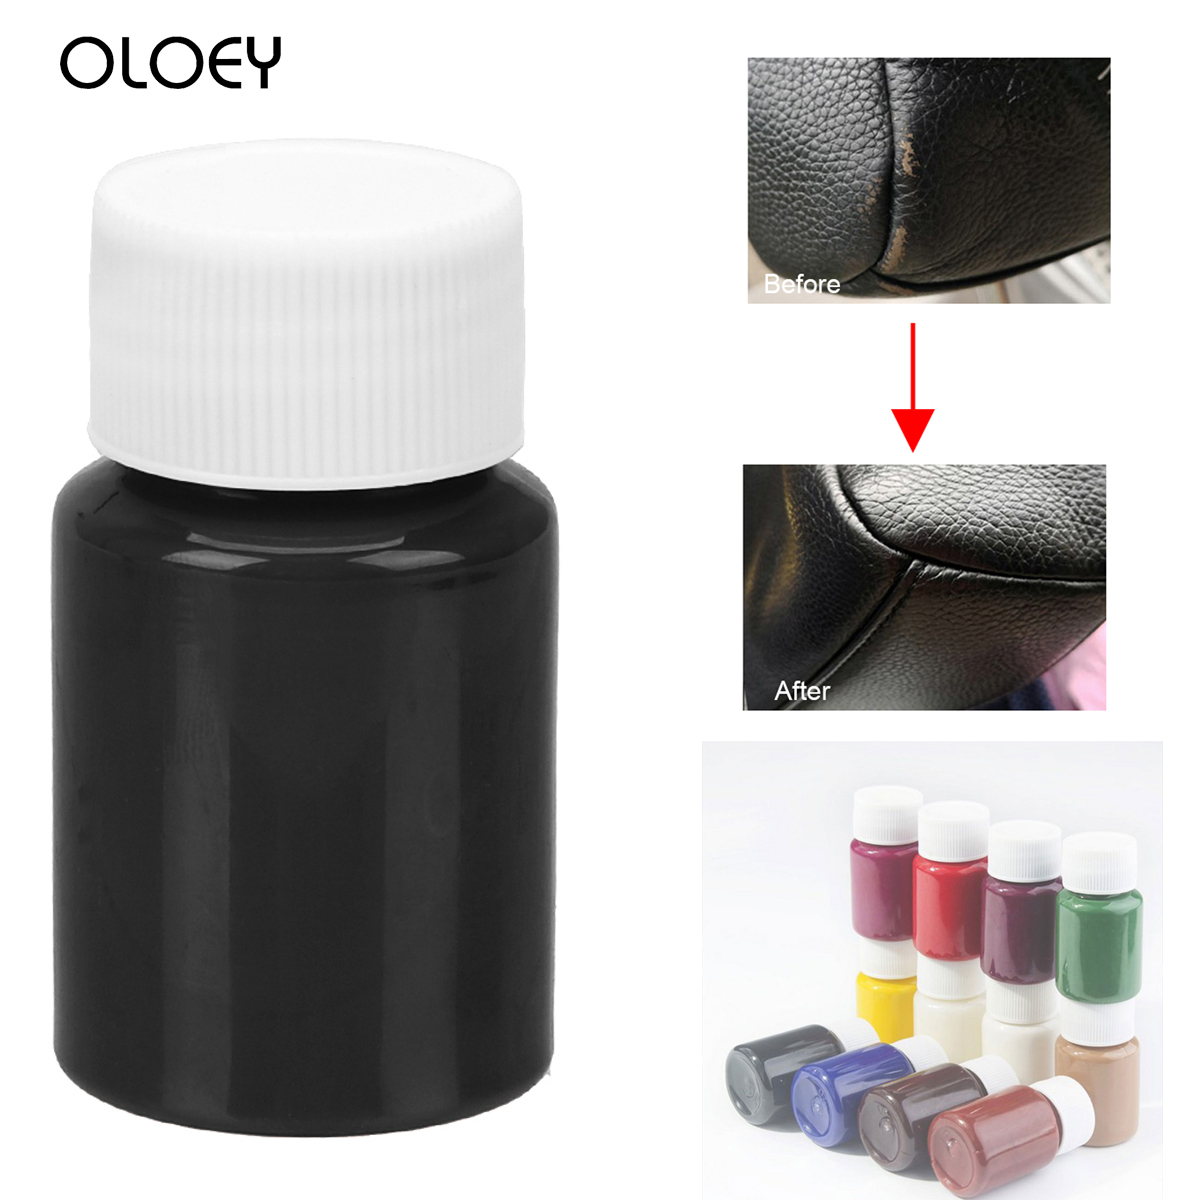 OLOEY 30ml Leather Repair Tool Car Seat Sofa Coats No Heat Liquid Leather And Vinyl Restorer Holes Scratch Cracks Universal